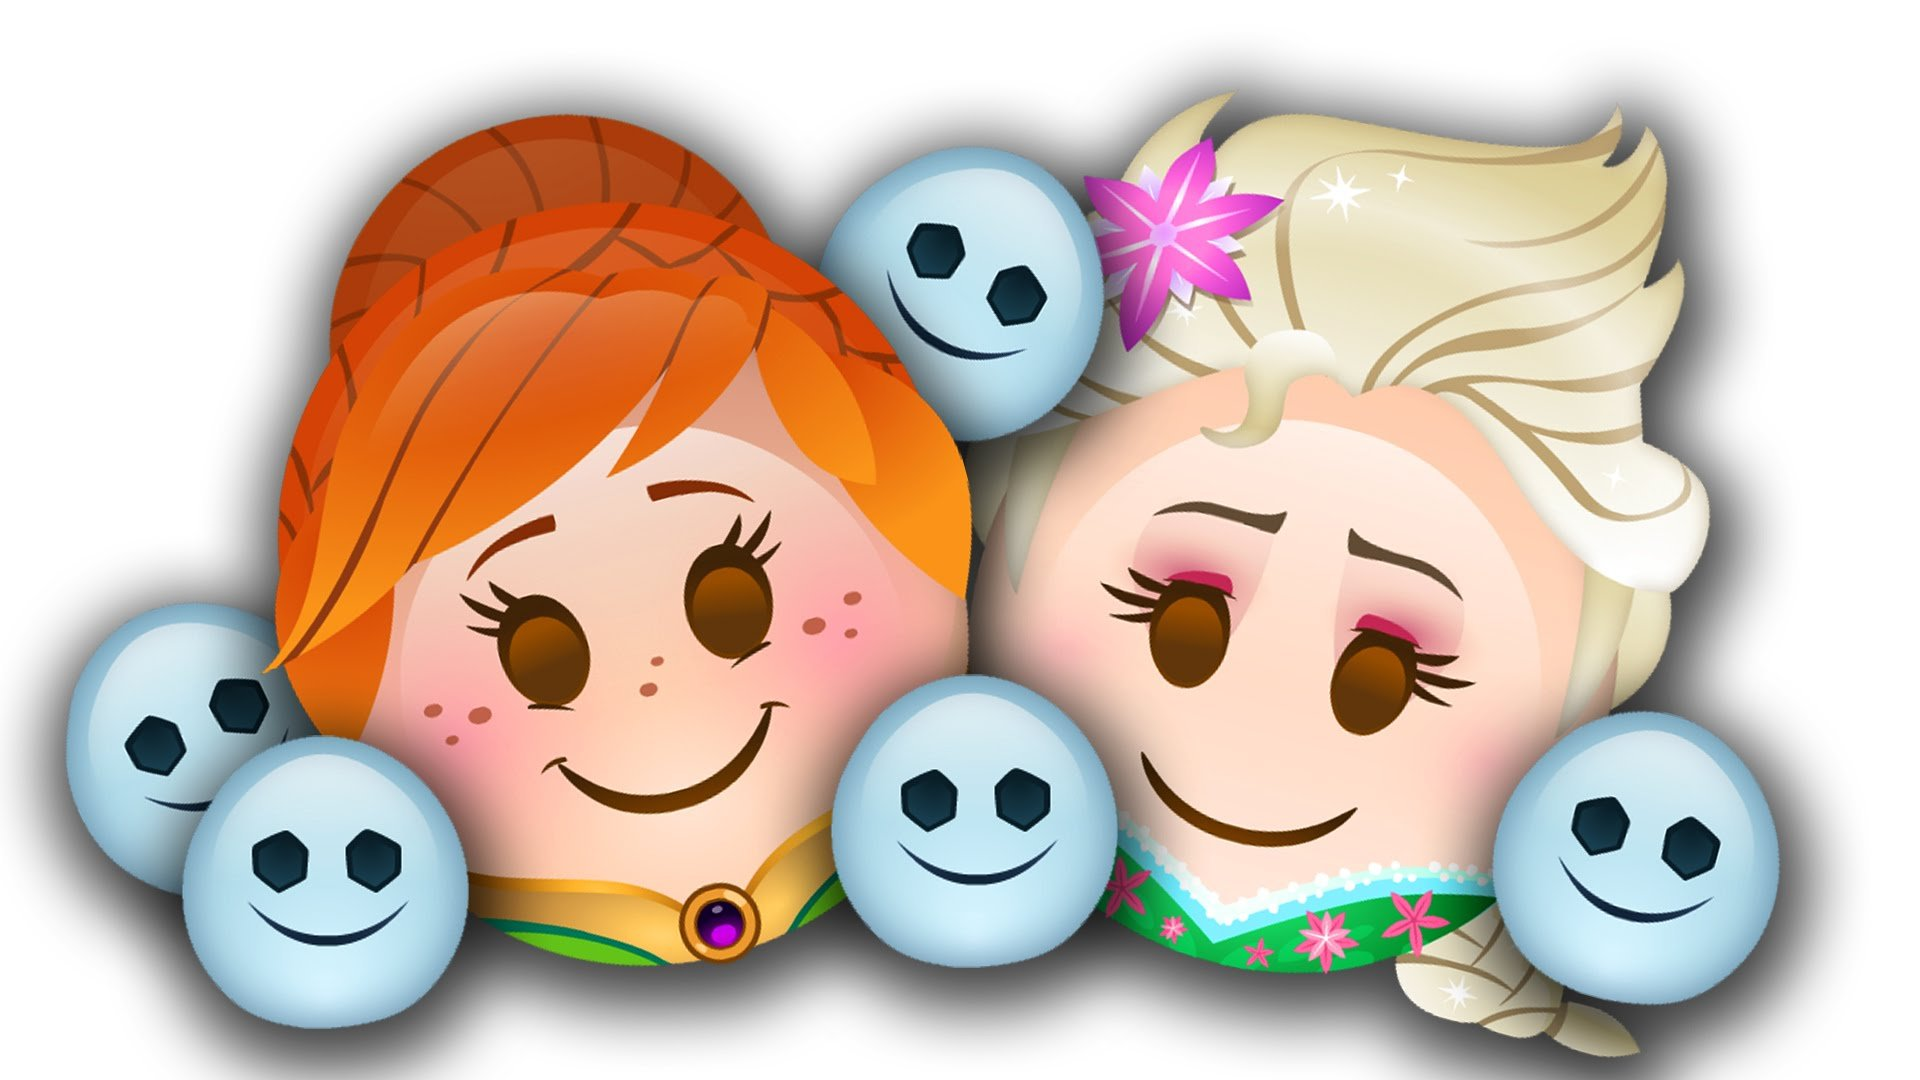 Disney Releases Frozen Fever as Told by Emoji